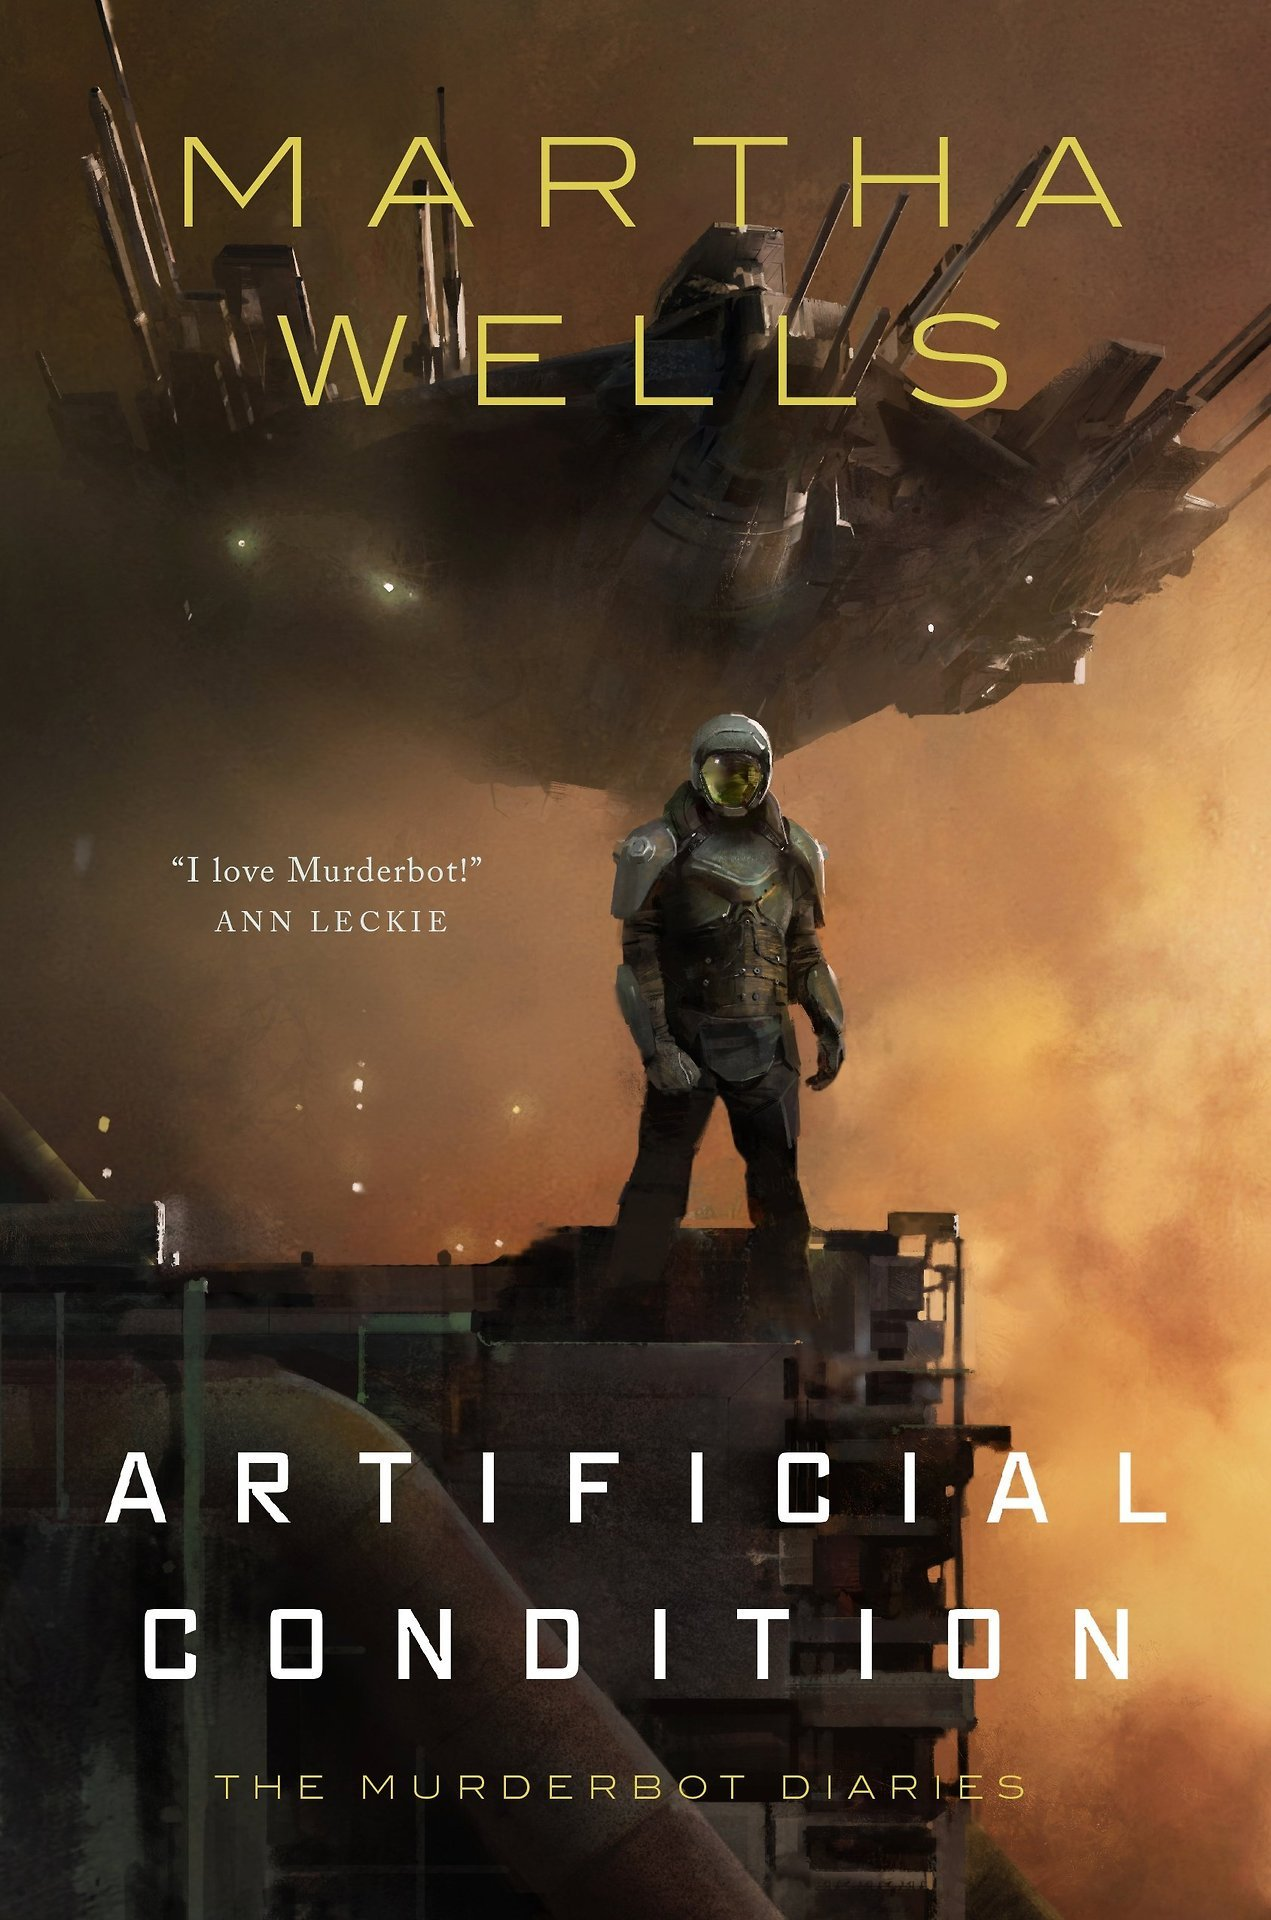 Artificial-Conditions-Martha-Wells.jpg